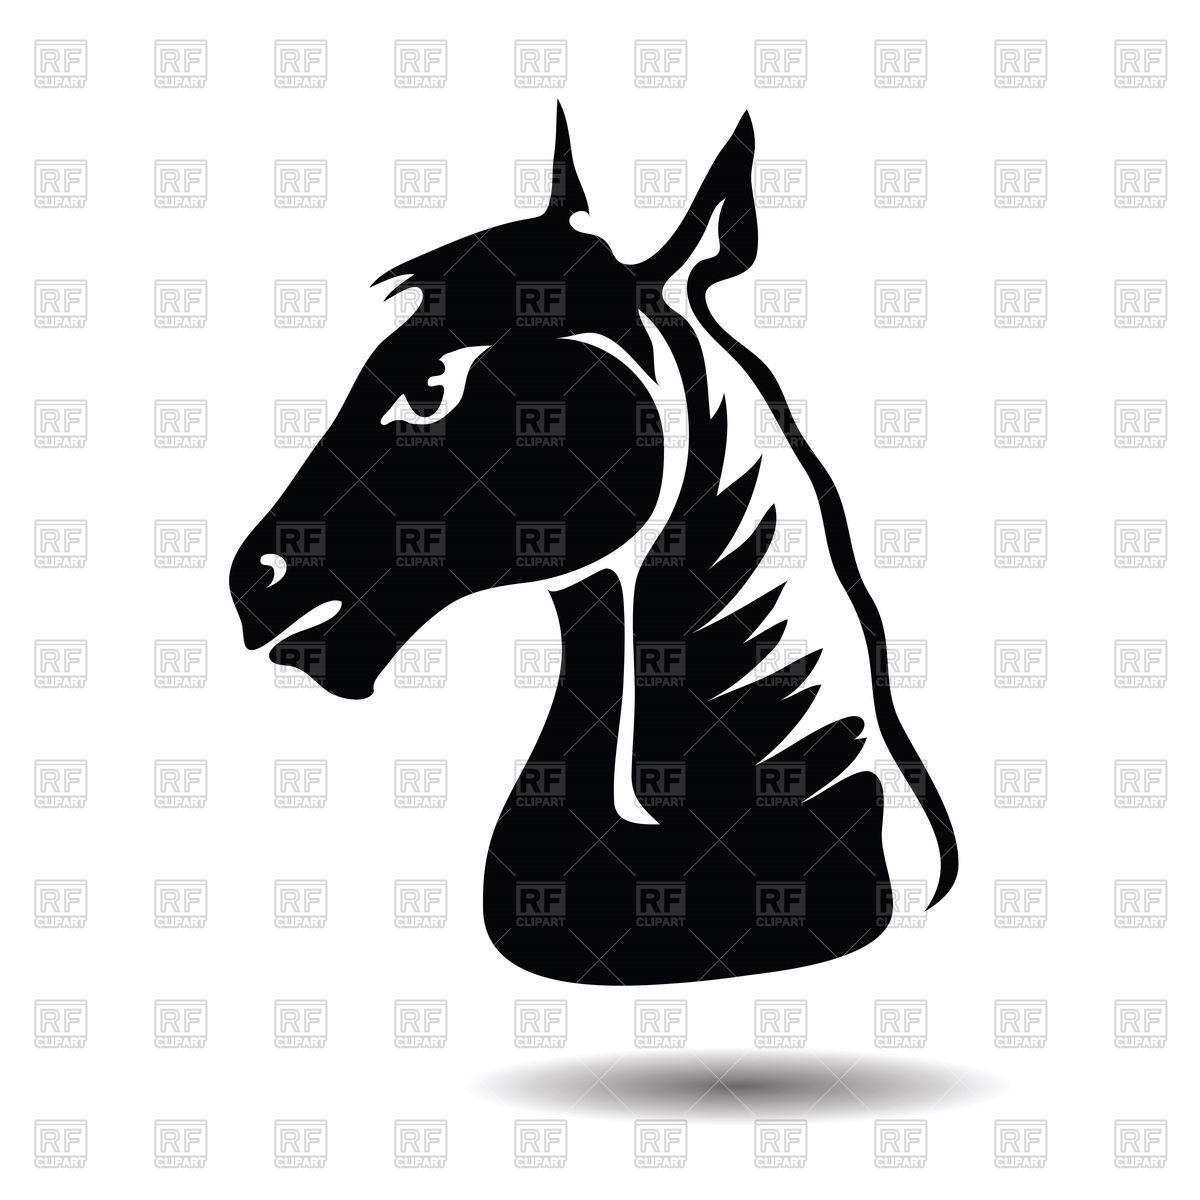 1200x1200 Stylized Silhouette Of Horse Head Vector Image Vector Artwork Of